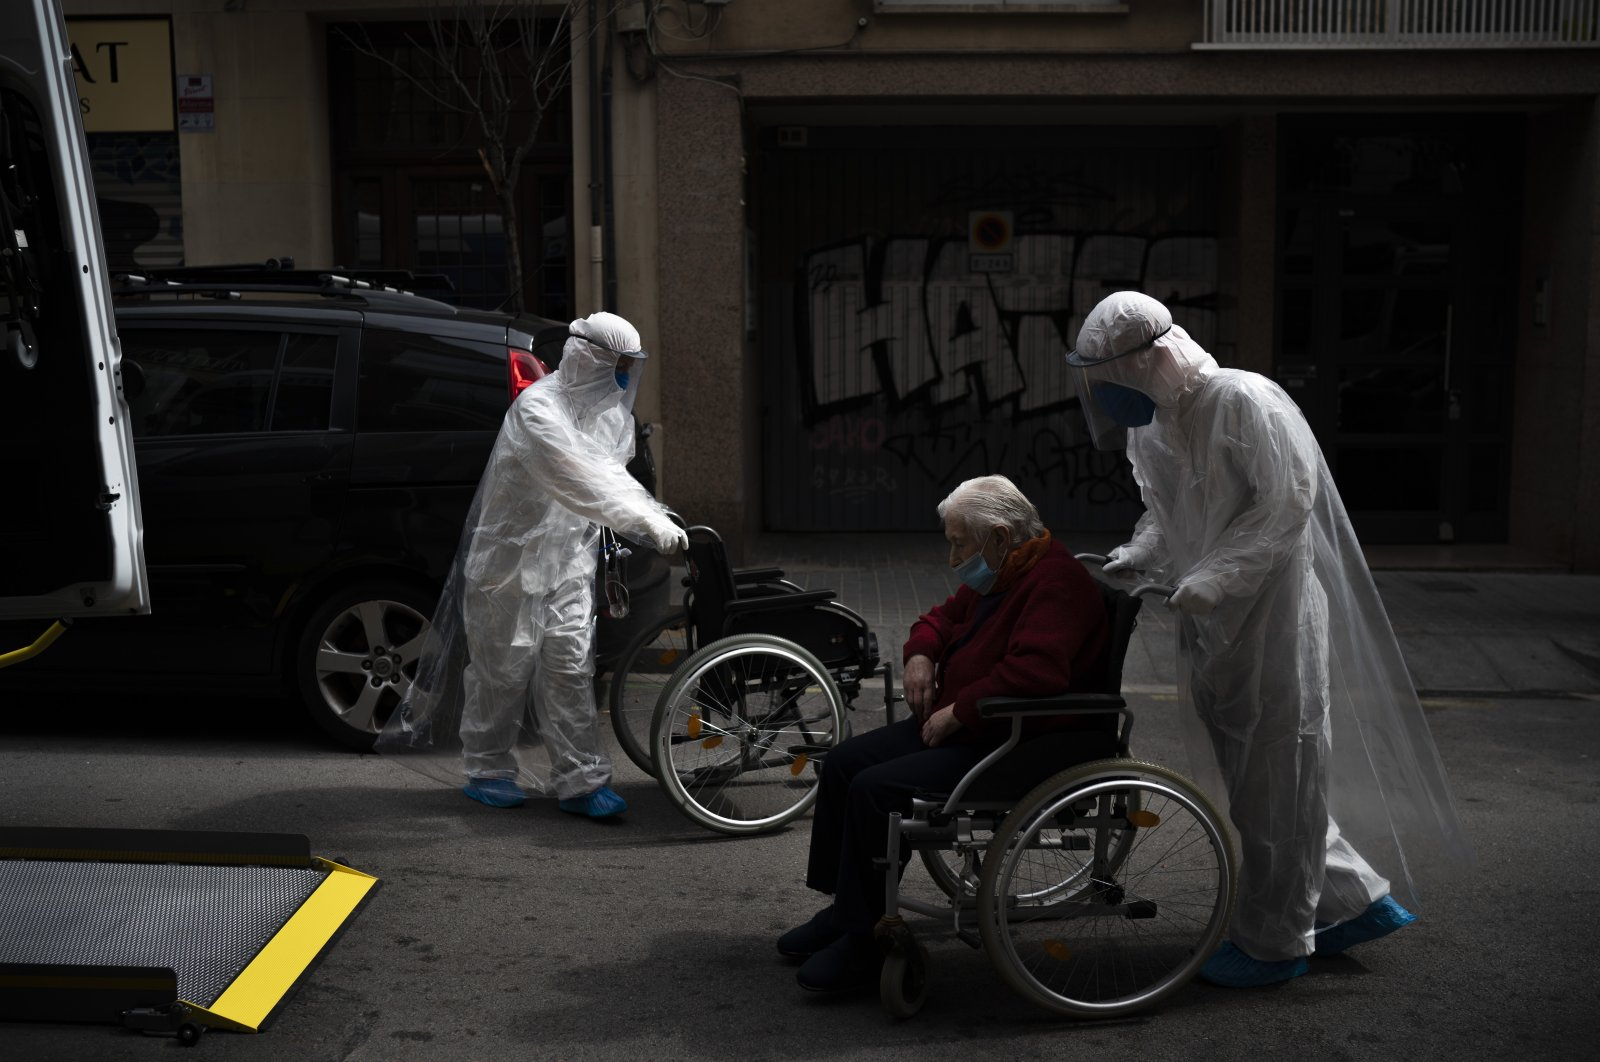 A volunteer of the Spanish nongovernmental organization Open Arms pushes an elderly resident of a nursing home who has coronavirus symptoms in a wheelchair to a hospital in Barcelona, Spain, April 11, 2020. (AP Photo)